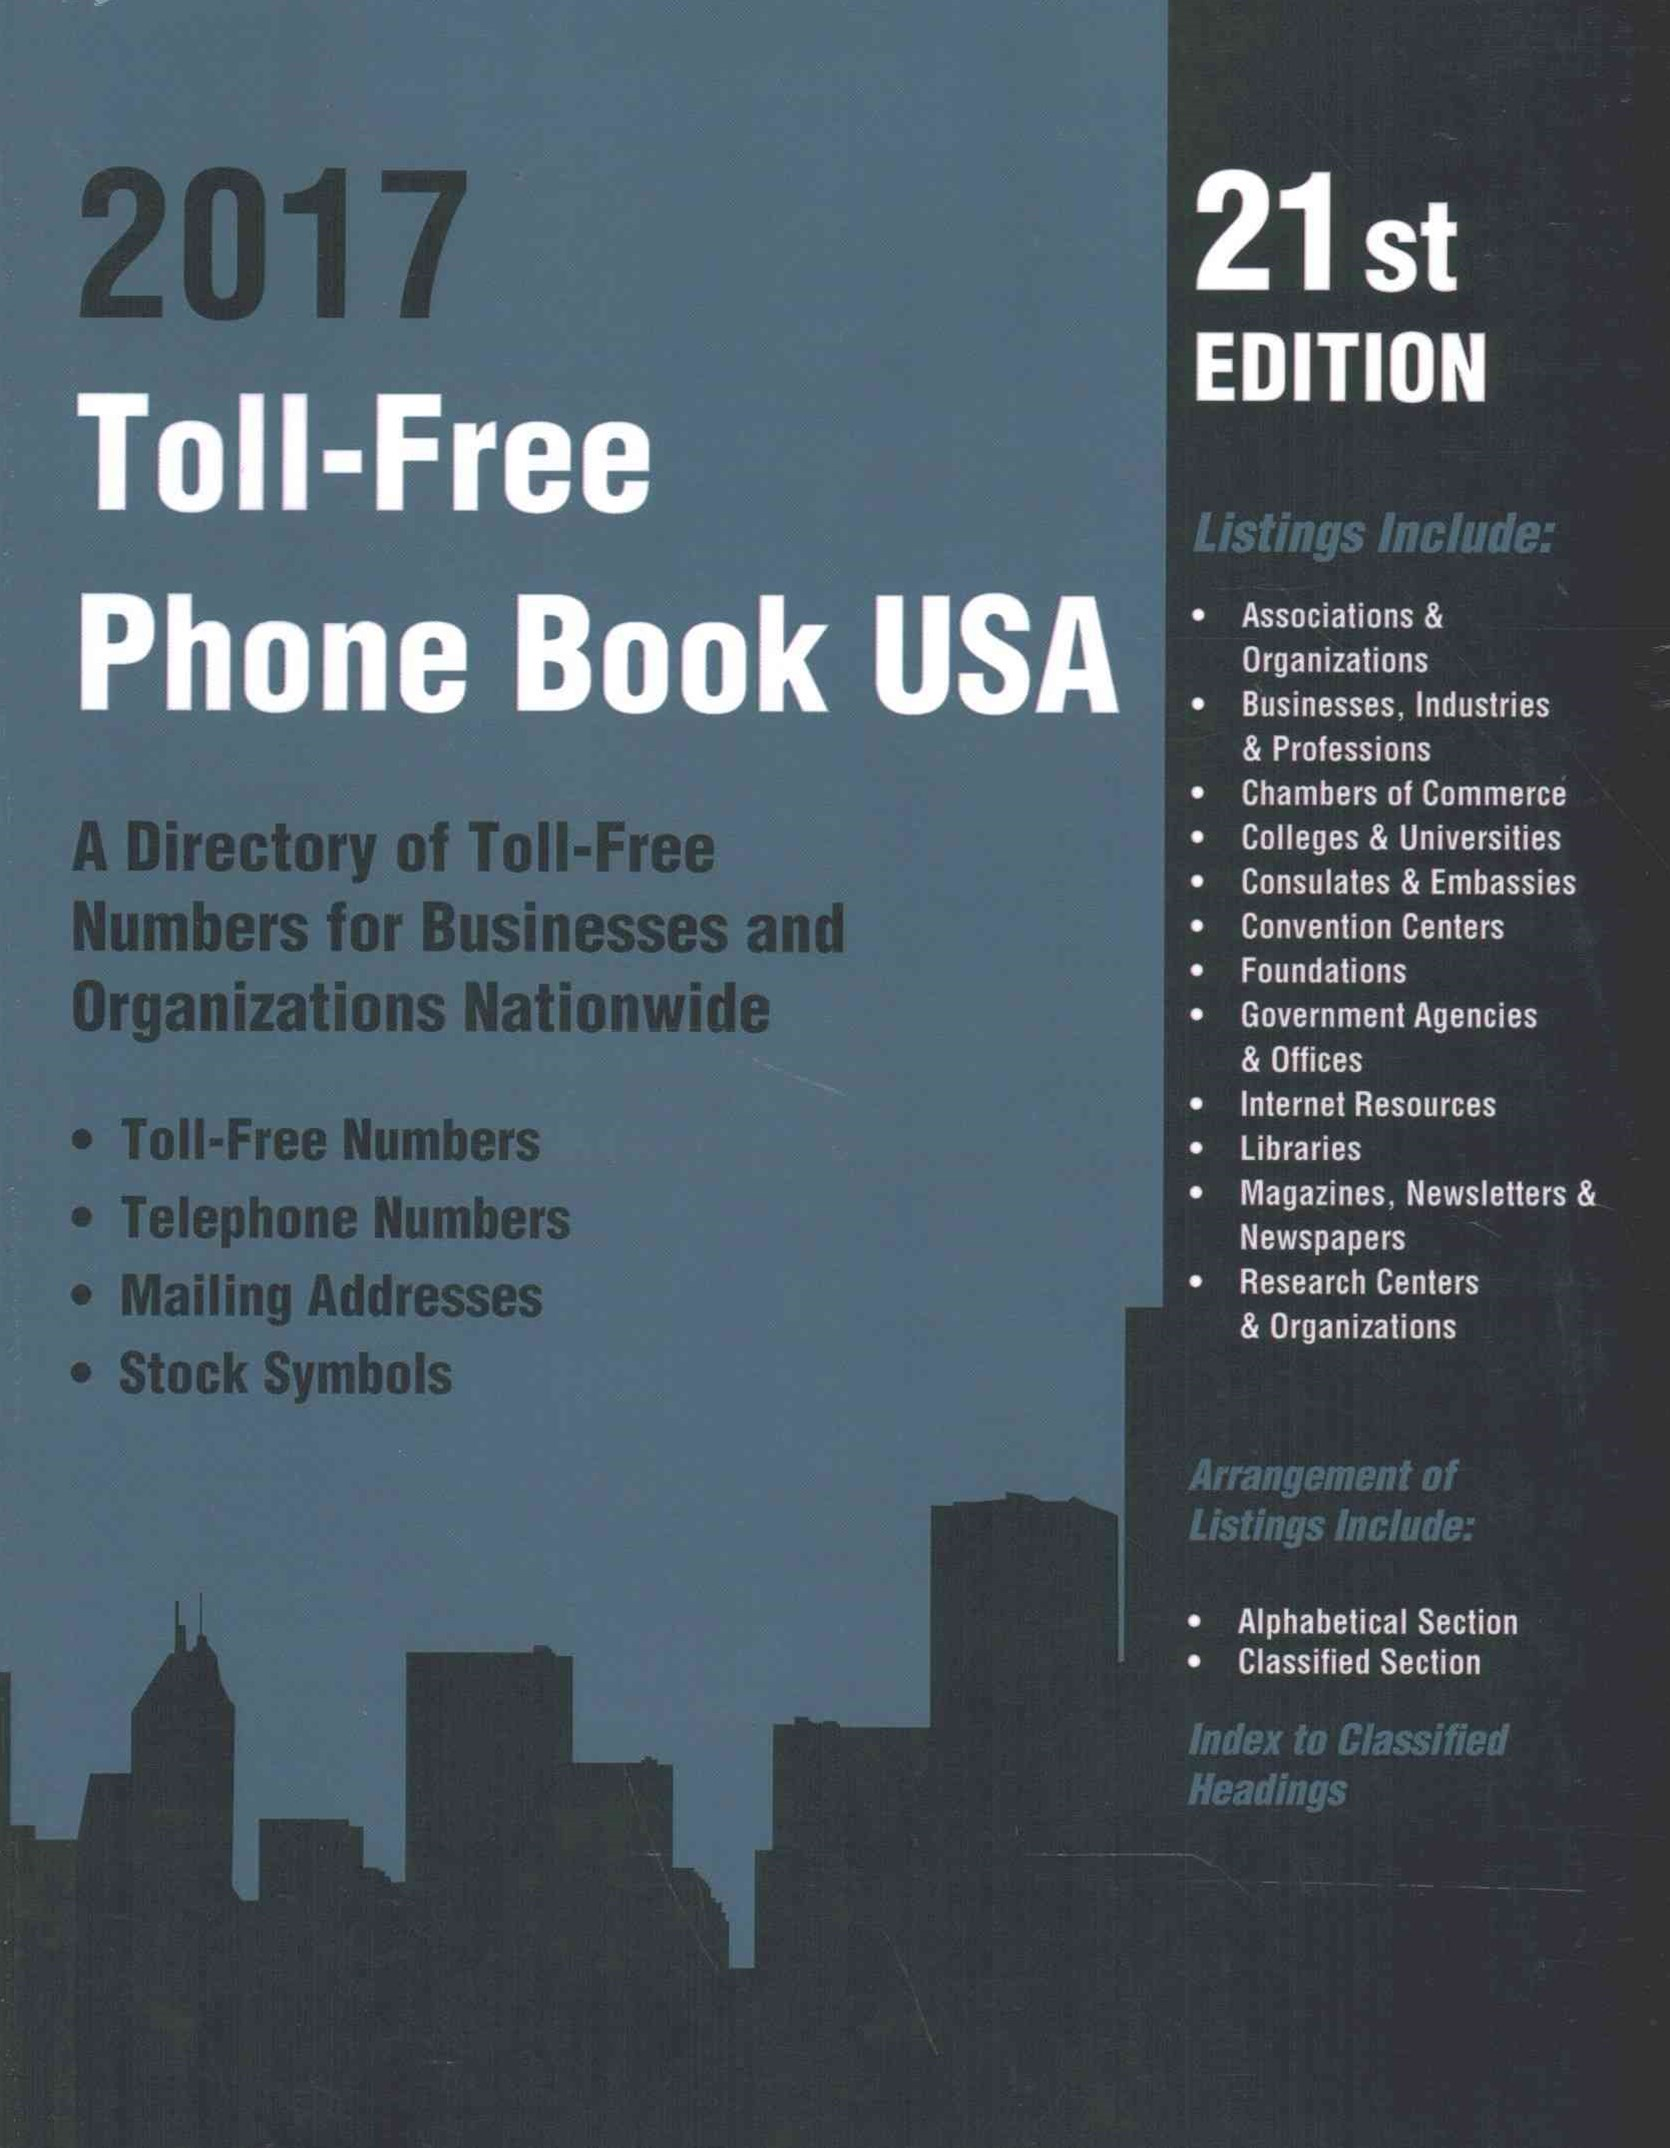 Toll-Free Phone Book USA 2017